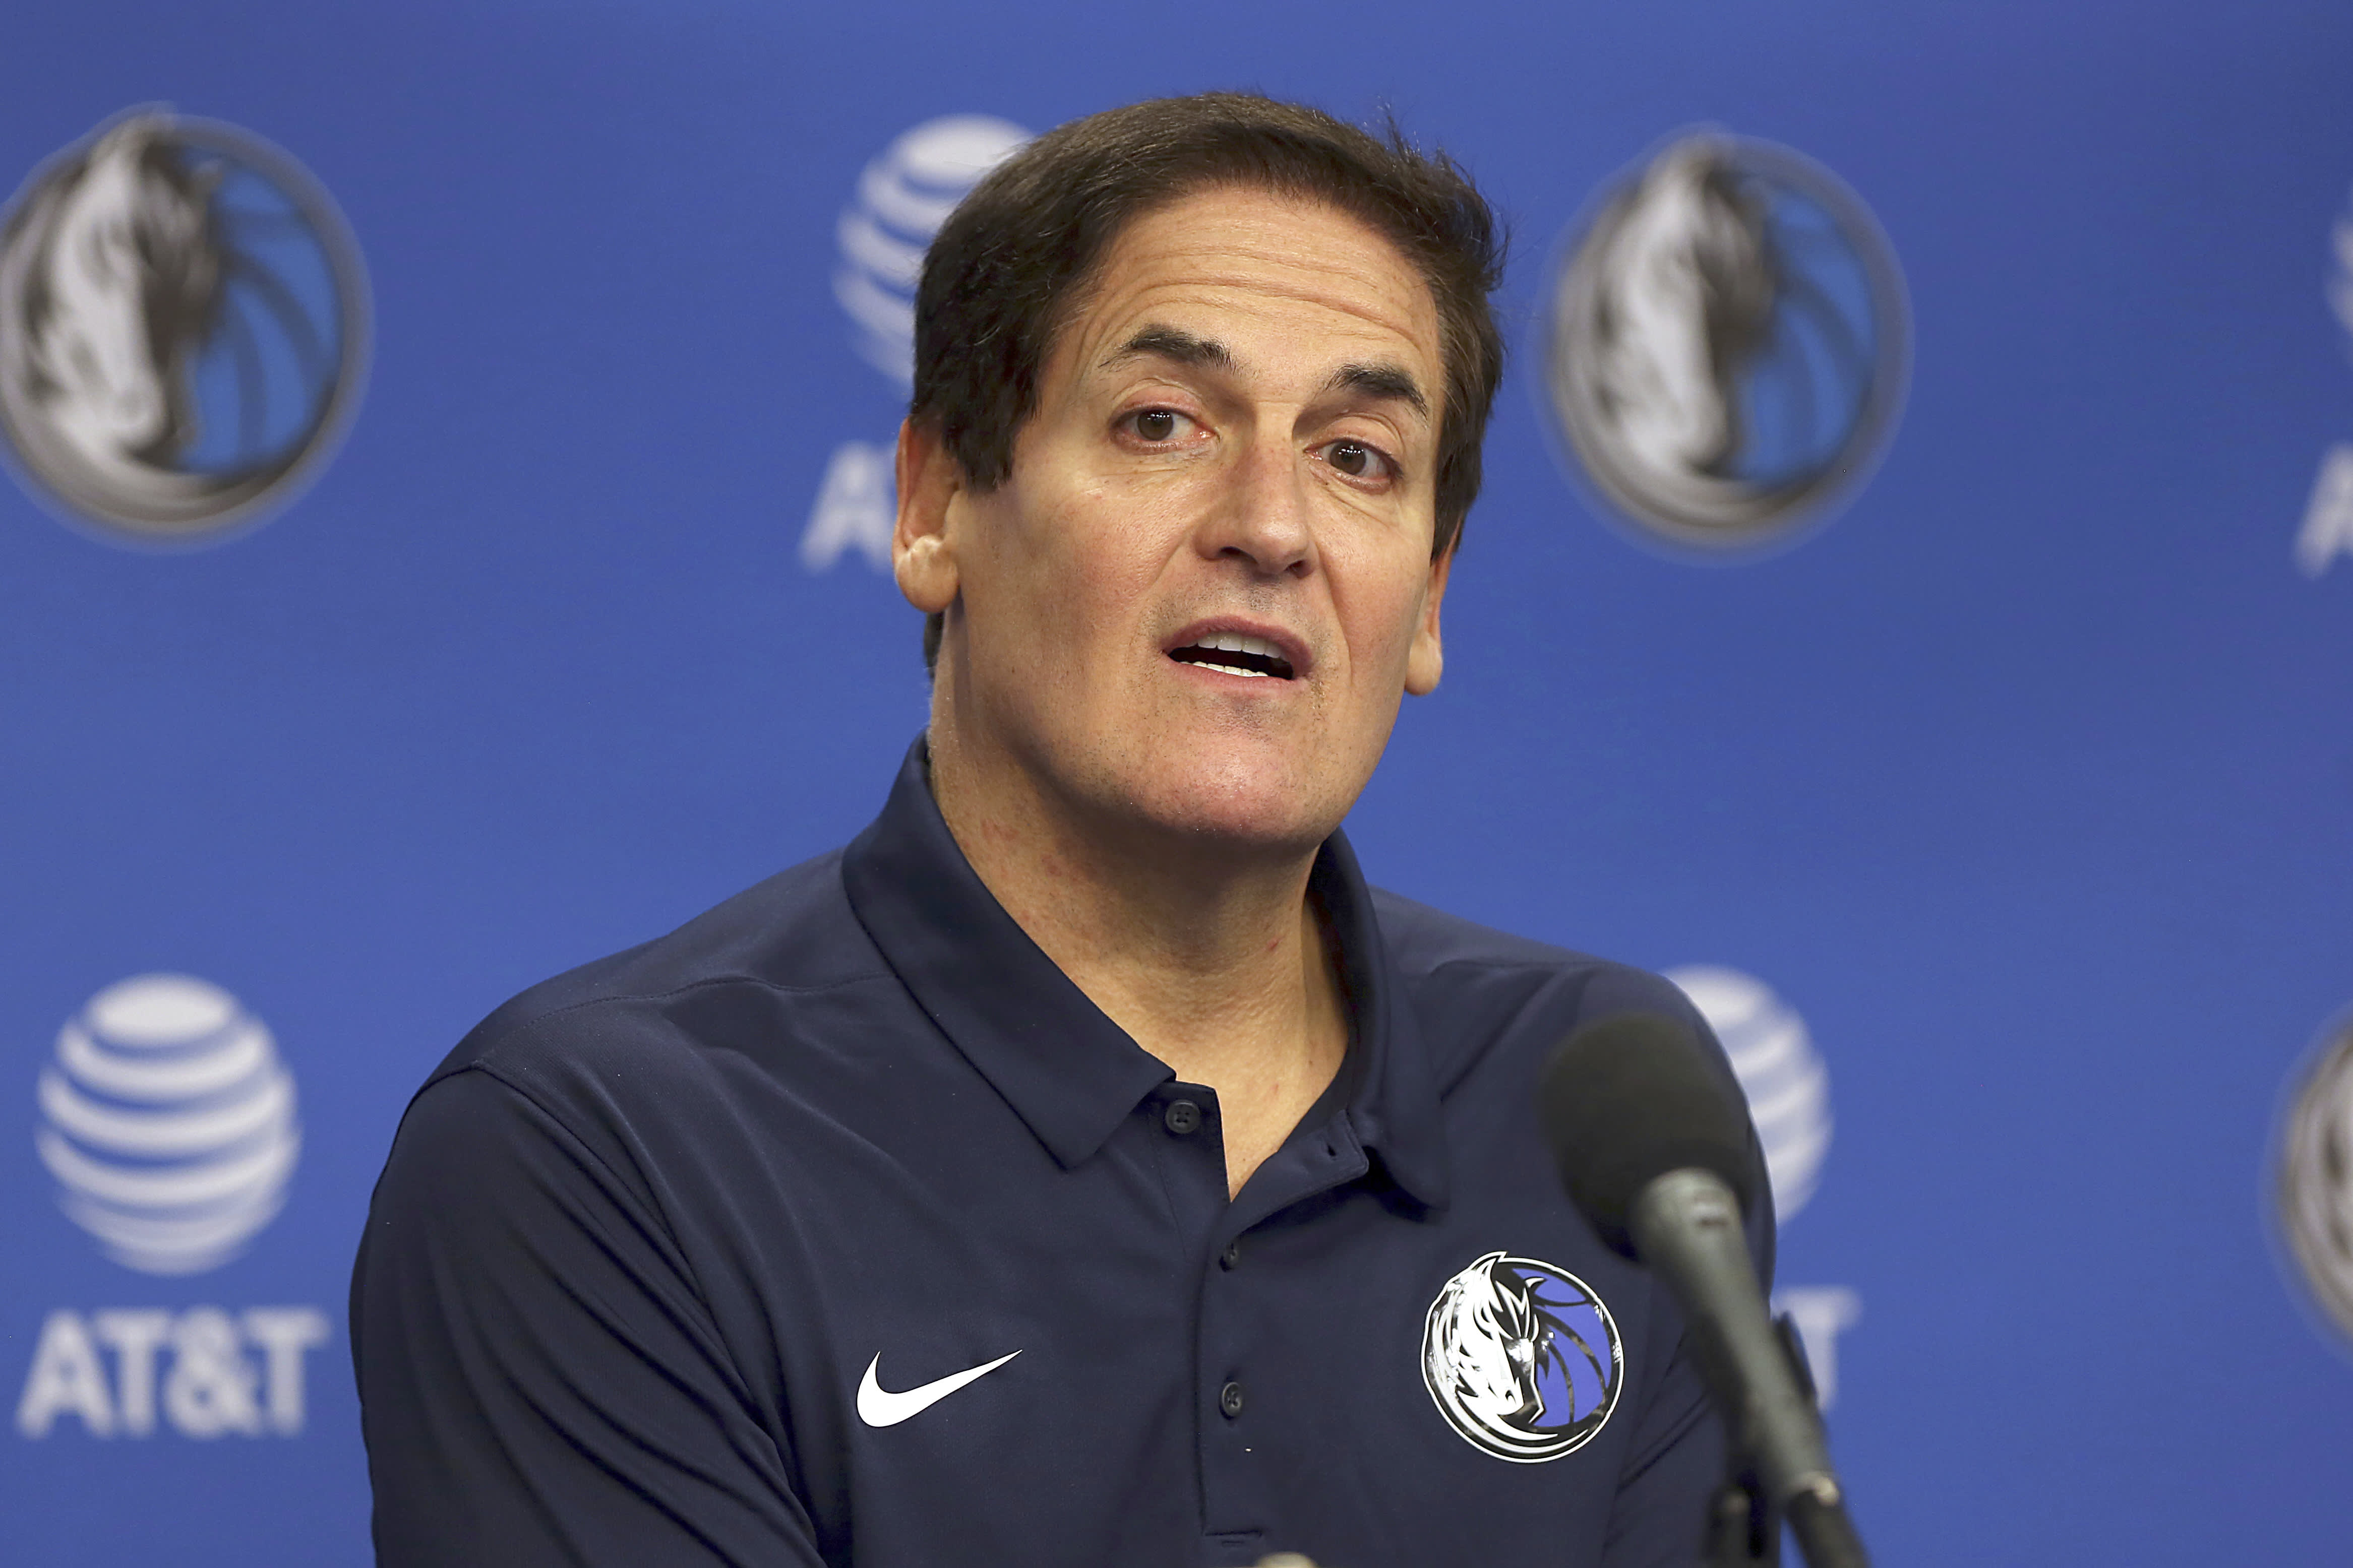 Mark Cuban: 'I don't need to unplug' from my cell phone or answering emails